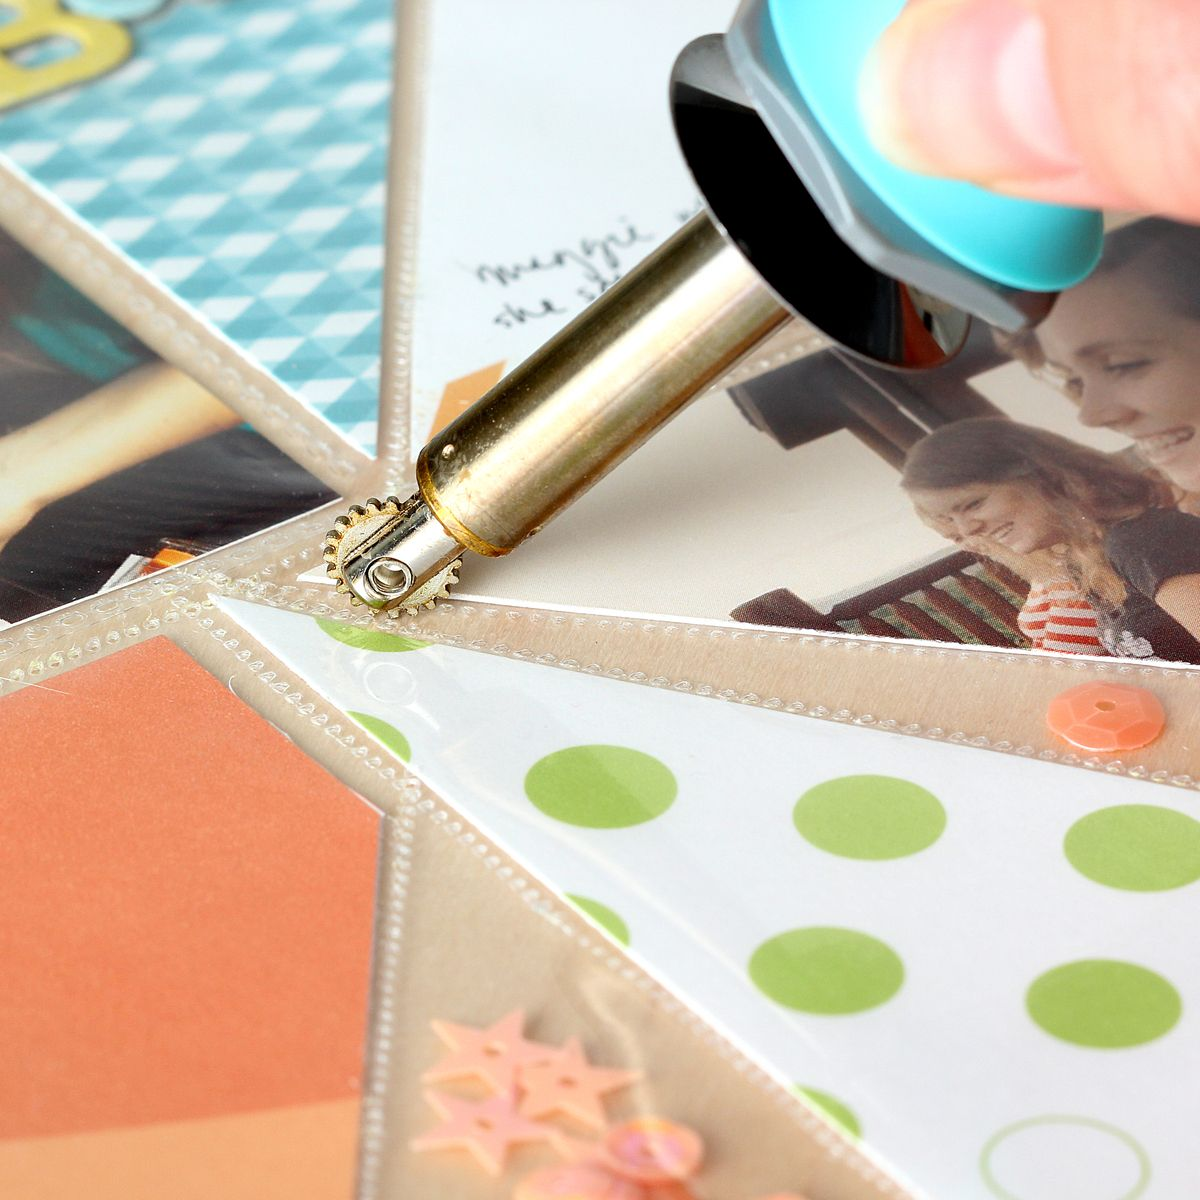 Scrapbook ideas and tips - Blog Learn More About The Fuse Tool Scrapbooking Kits Paper Supplies